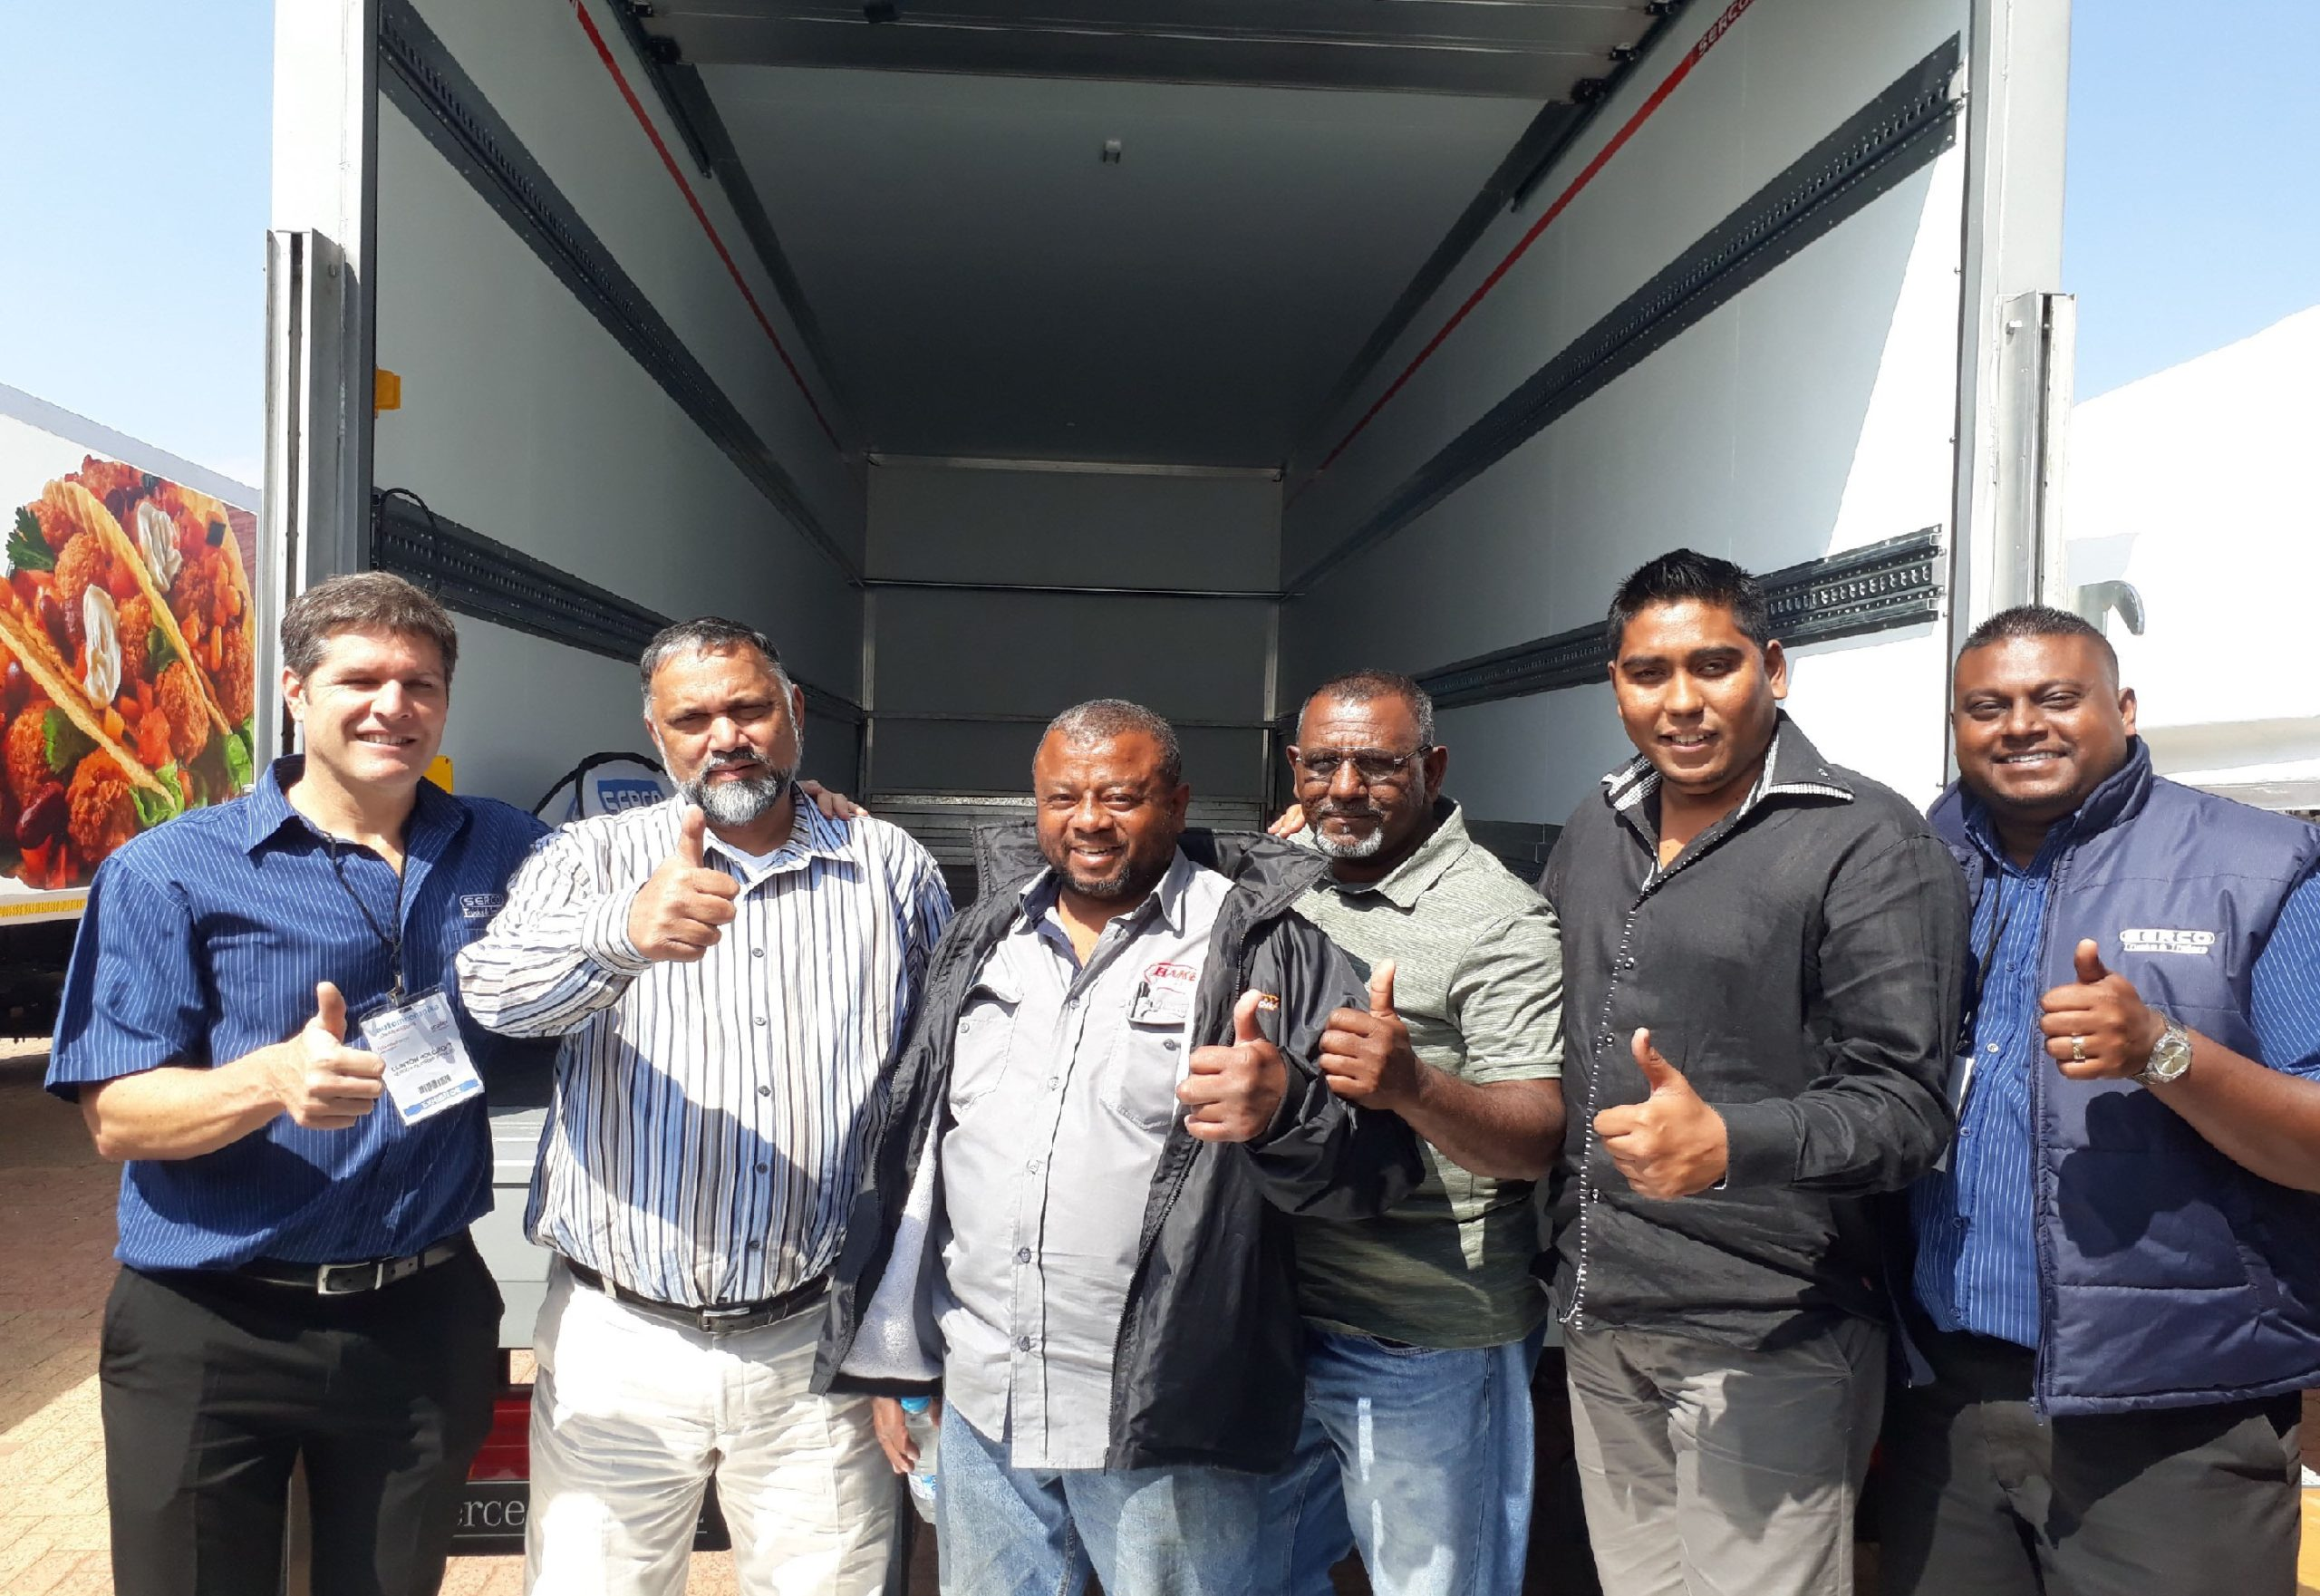 Seen at the handover of the new Bakers SA Ltd vehicle are from left: Clinton Holcroft from Serco with Aman Kader, Farouk Bhadu, Ismail Khan, Mohammed Noushad Cassim and Trivolan Pillay from Bakers.